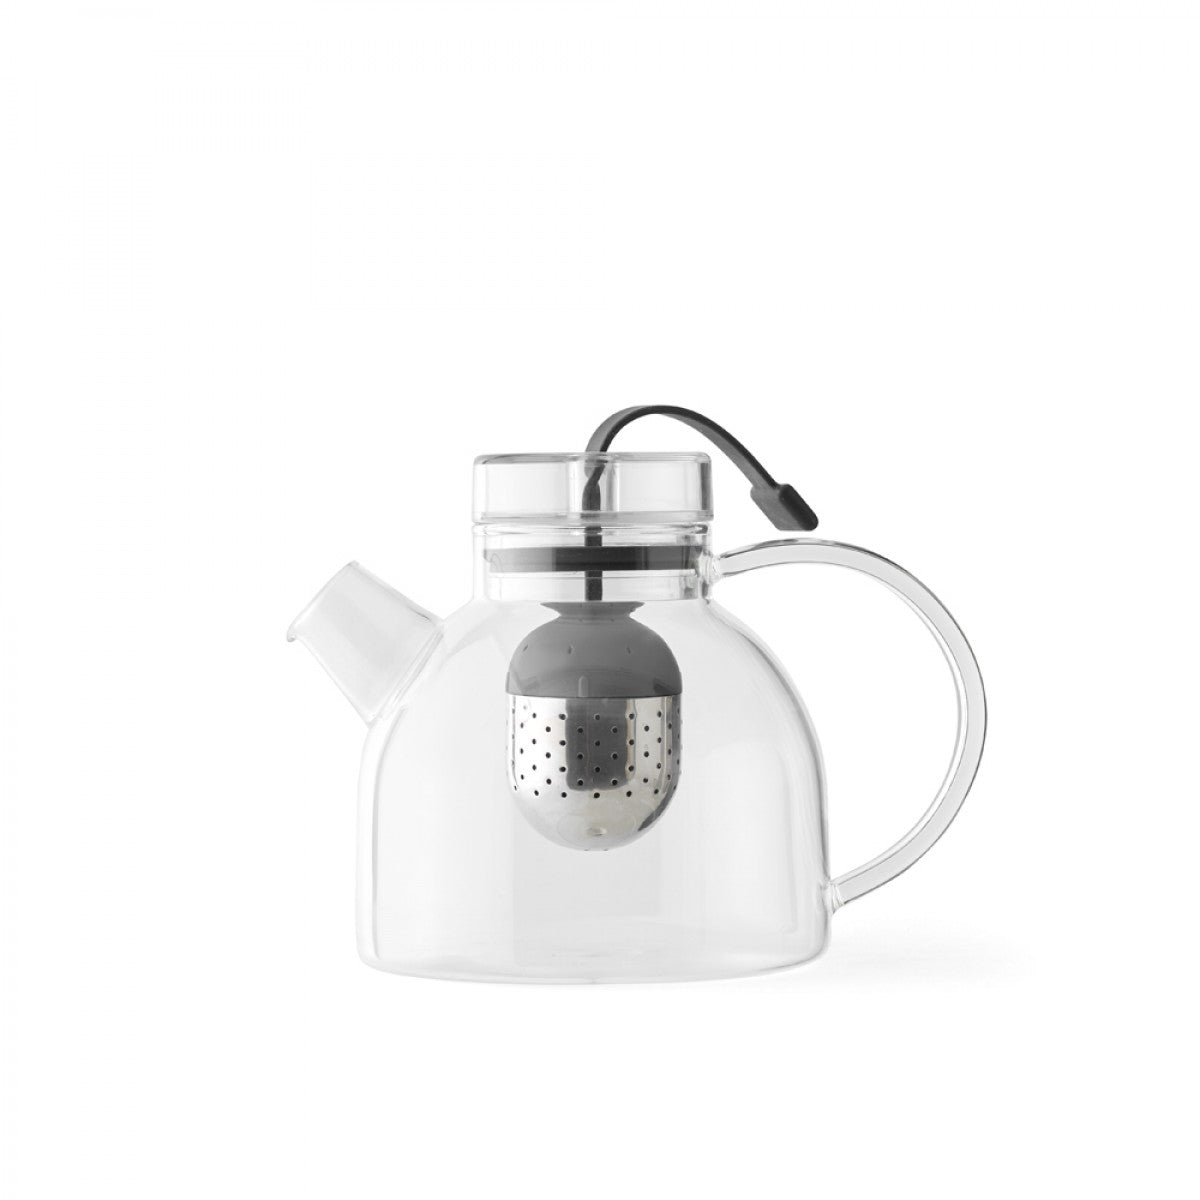 homeware-MENU-teapot-glass